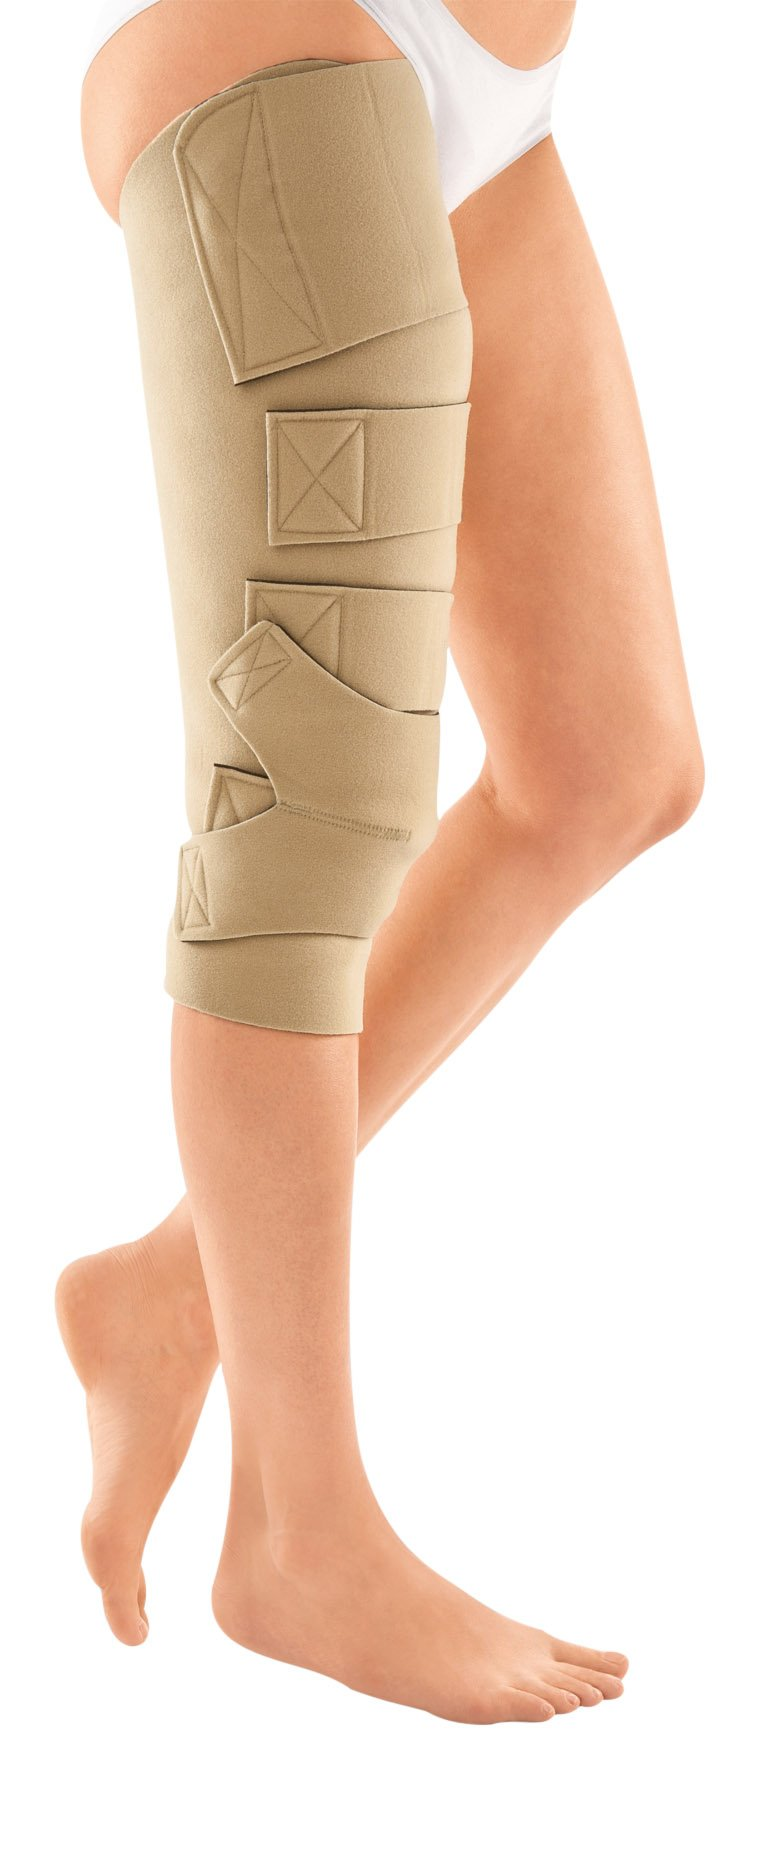 circaid juxtafit essentials upper leg xshort left